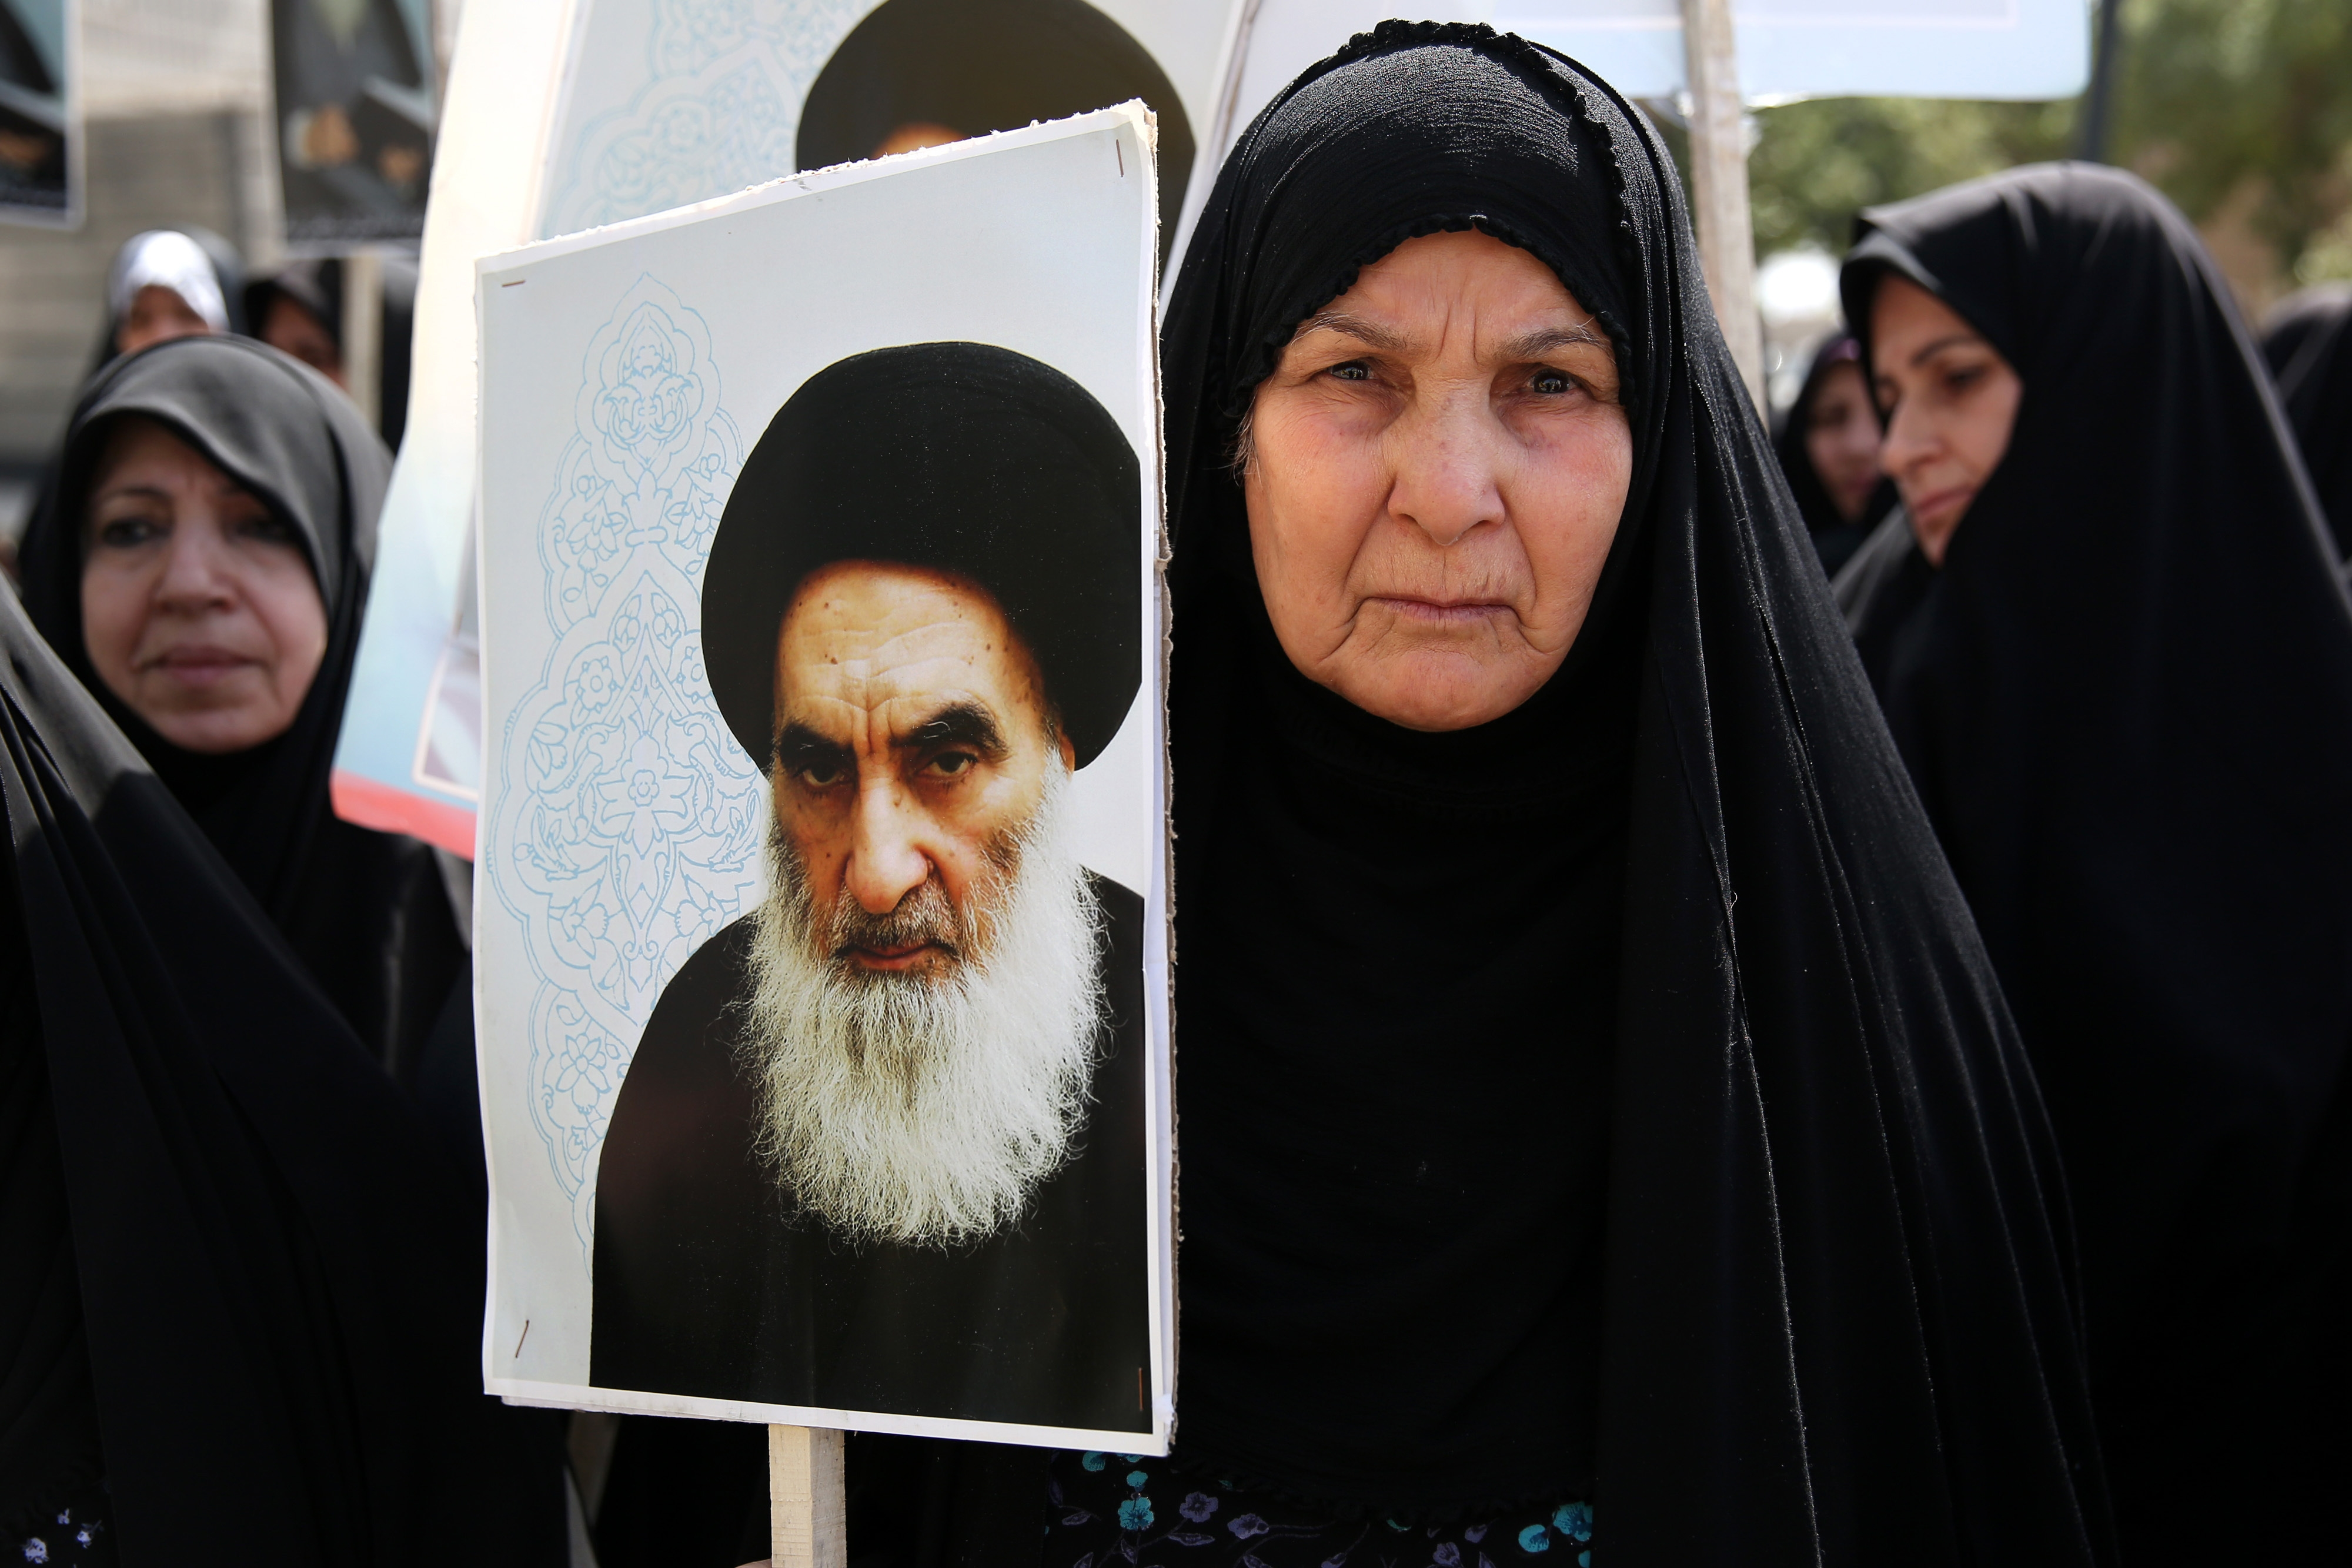 An Iraqi woman living in Iran holds a poster of the Grand Ayatollah Ali al-Sistani, Iraq's top Shiite cleric, in a demonstration against Sunni militants of the al-Qaida-inspired Islamic State of Iraq. Shiite leaders have pushed for the removal of Iraqi Prime Minister Nouri al-Maliki as parliament works on a new government.